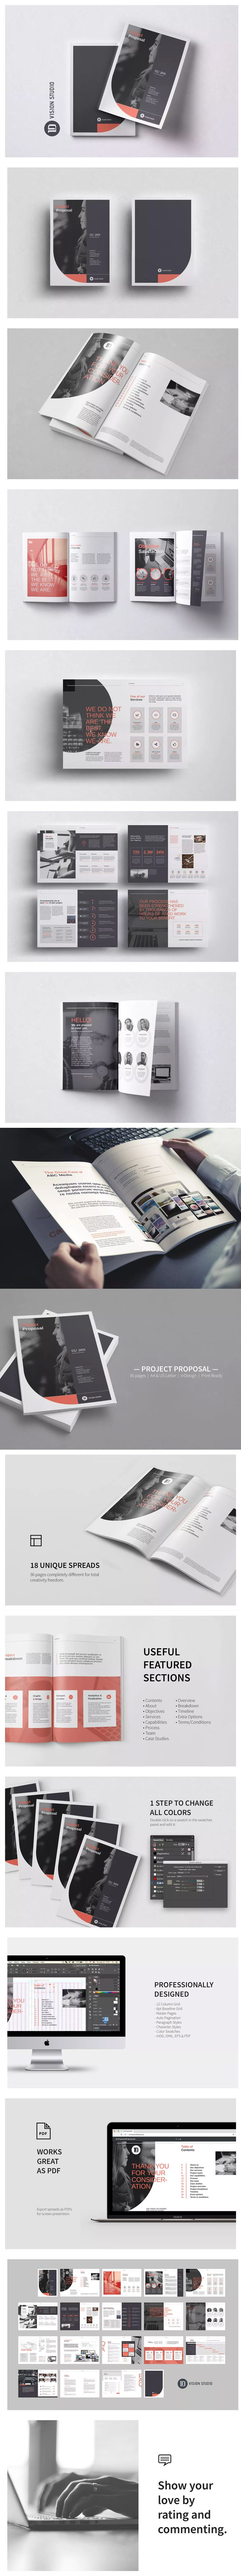 Project Proposal Brochure Template InDesign INDD